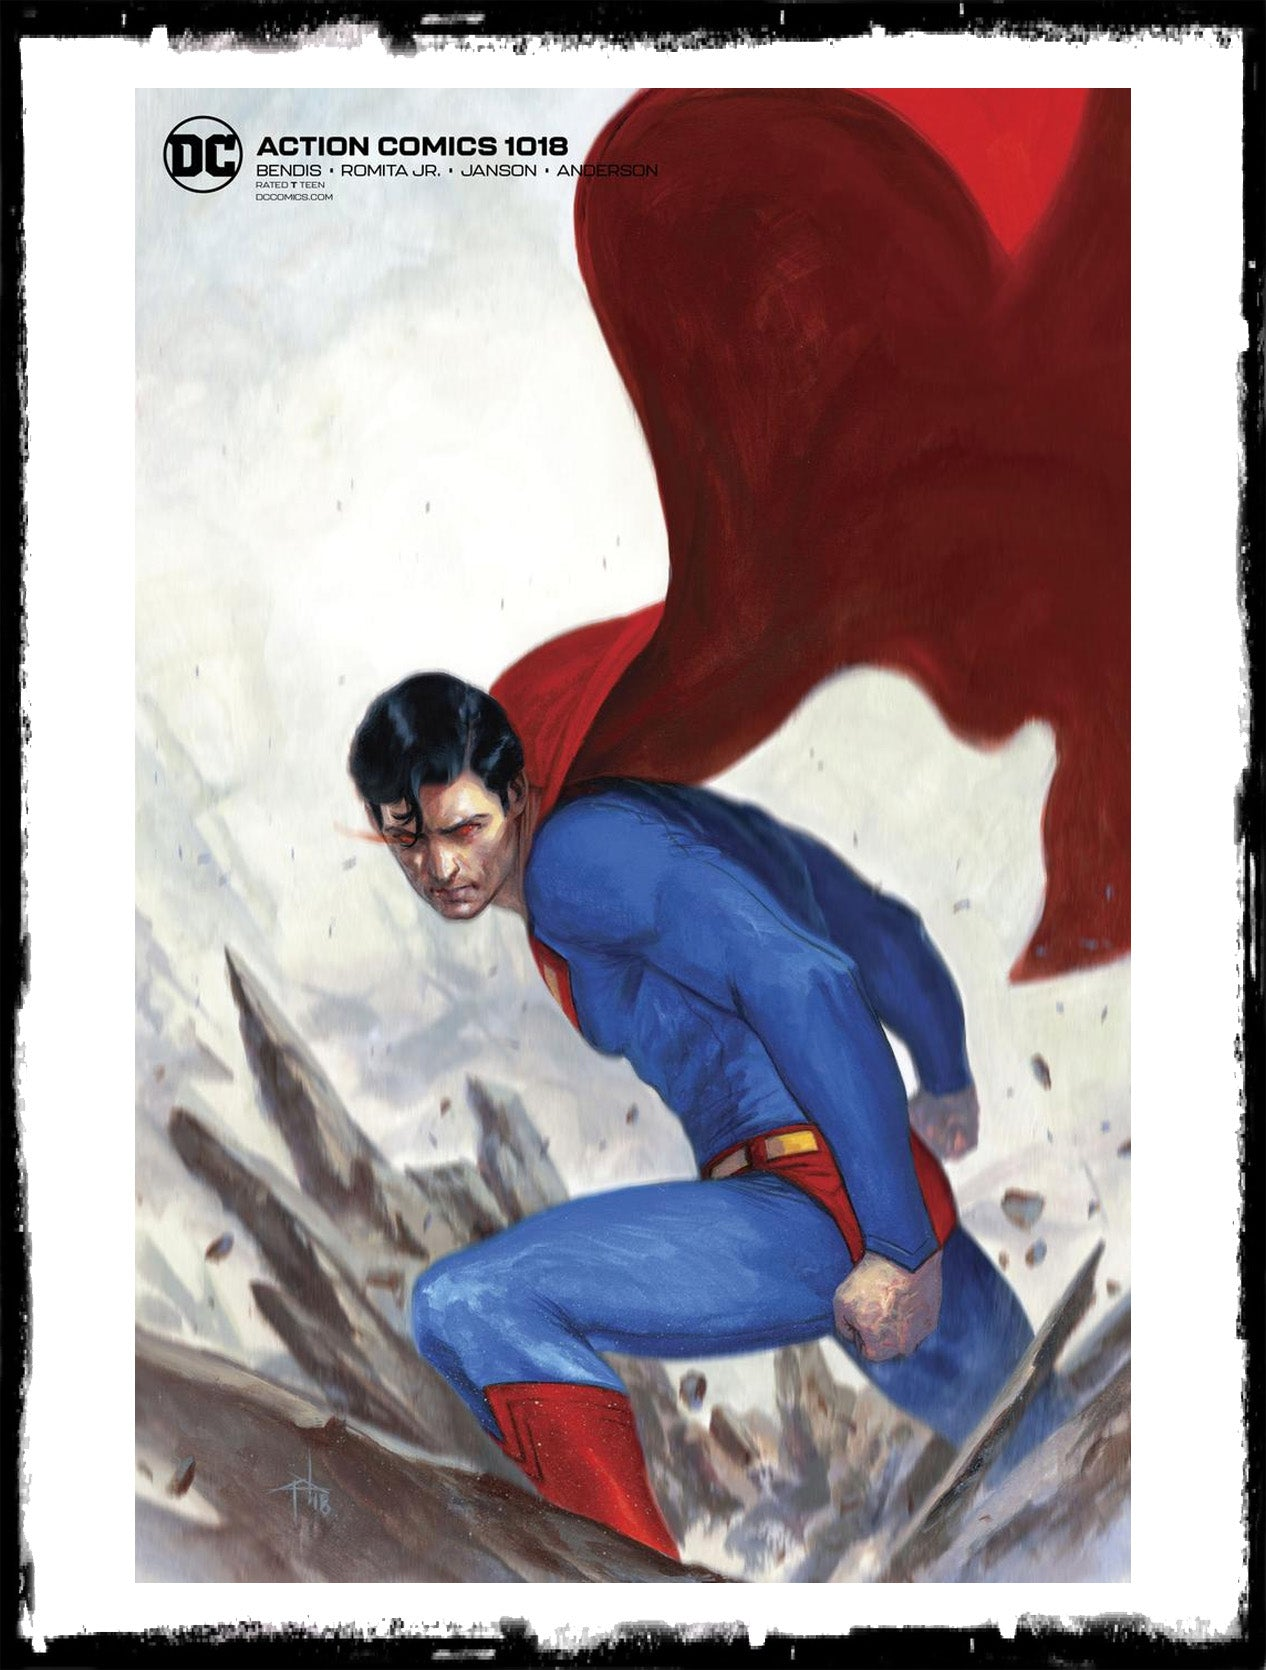 ACTION COMICS - 1018 GABRIELE DELL'OTTO COVER (2019 - NM)